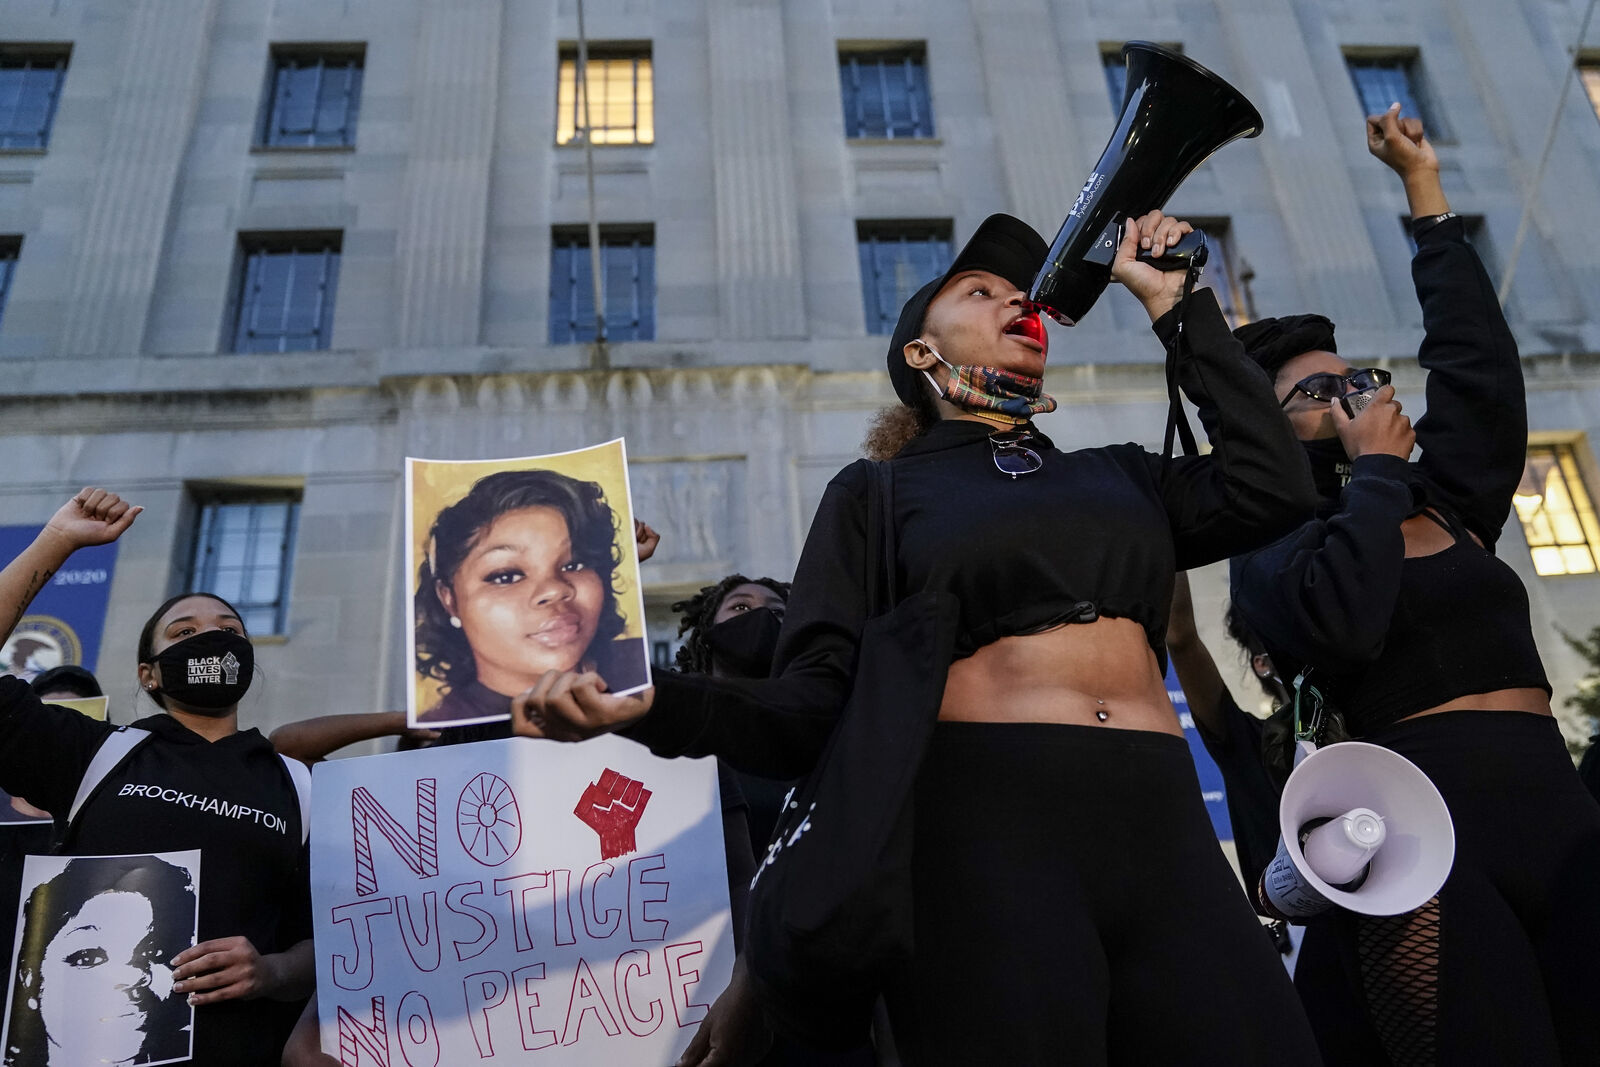 WASHINGTON, DC - SEPTEMBER 23: Demonstrators rally in front of the U.S. Department of Justice in protest following a Kentucky grand jury decision in the Breonna Taylor case on September 23, 2020 in Washington, DC. A Kentucky grand jury indicted one police officer involved in the shooting of Breonna Taylor with 3 counts of wanton endangerment. No officers were indicted on charges in connection to Taylor's death. (Photo by Drew Angerer/Getty Images)